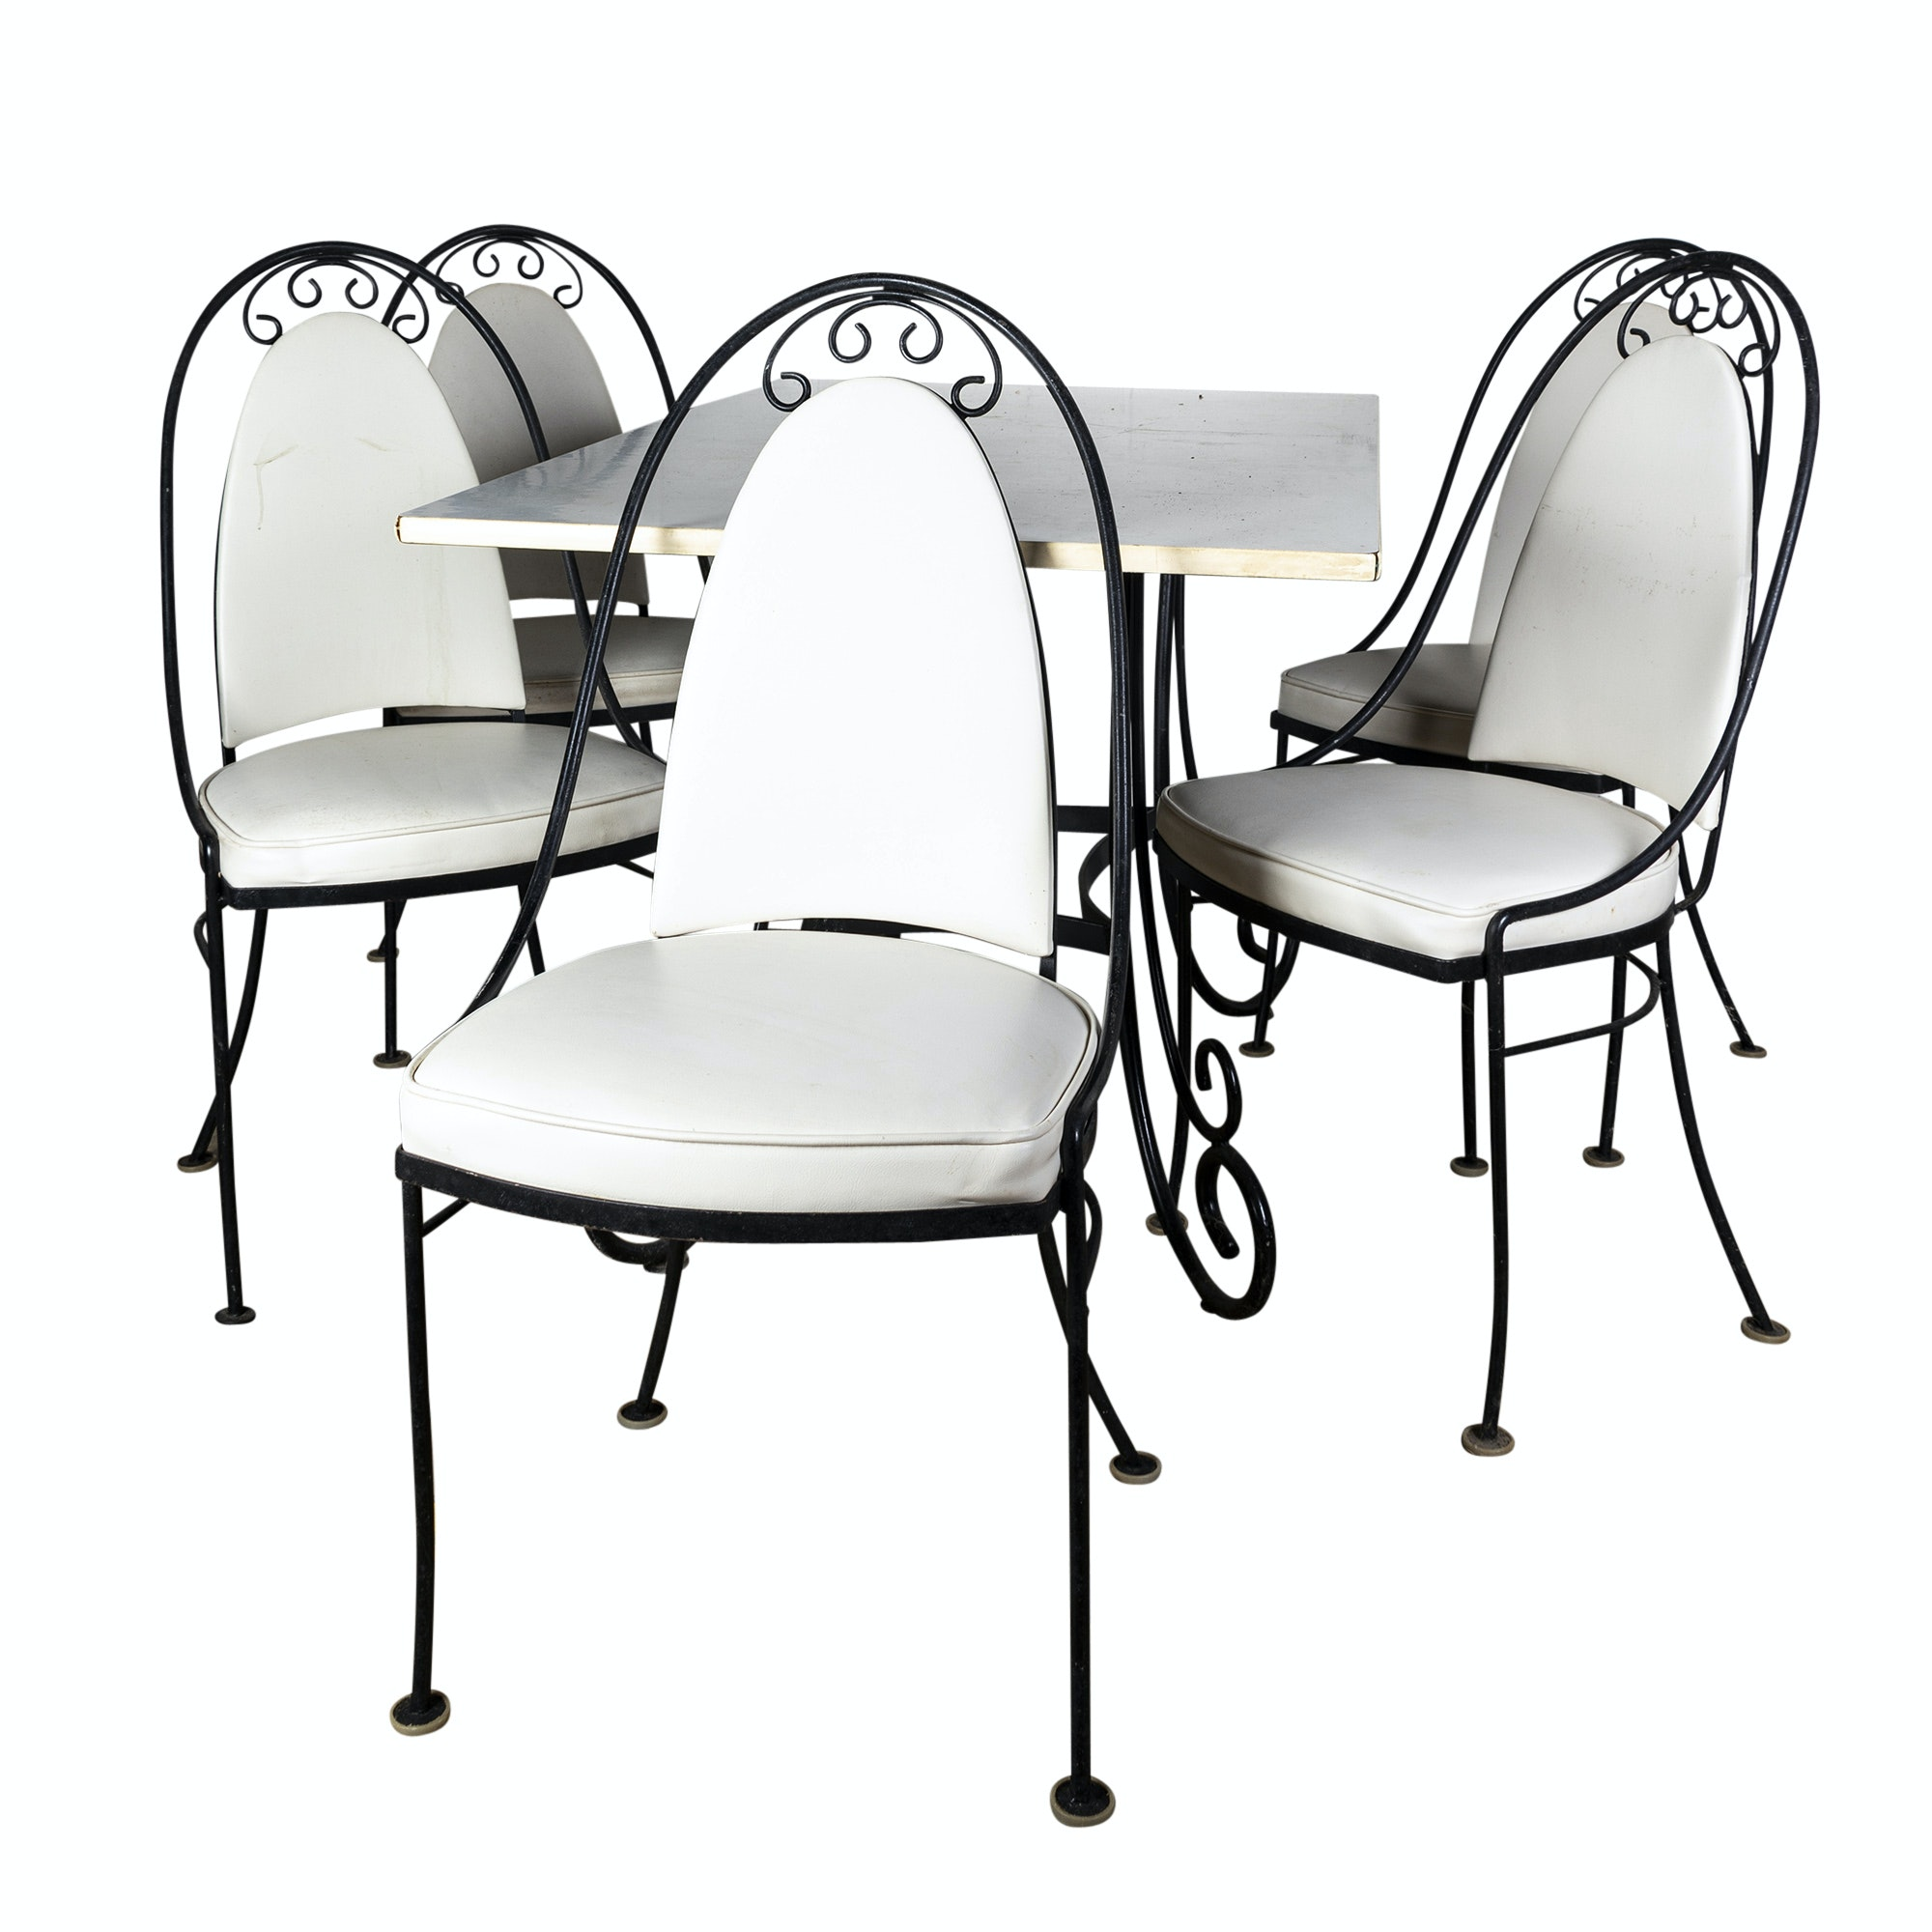 Metal Frame White Laminate Top Table with Side Chairs by Aladdin, Mid-20th C.